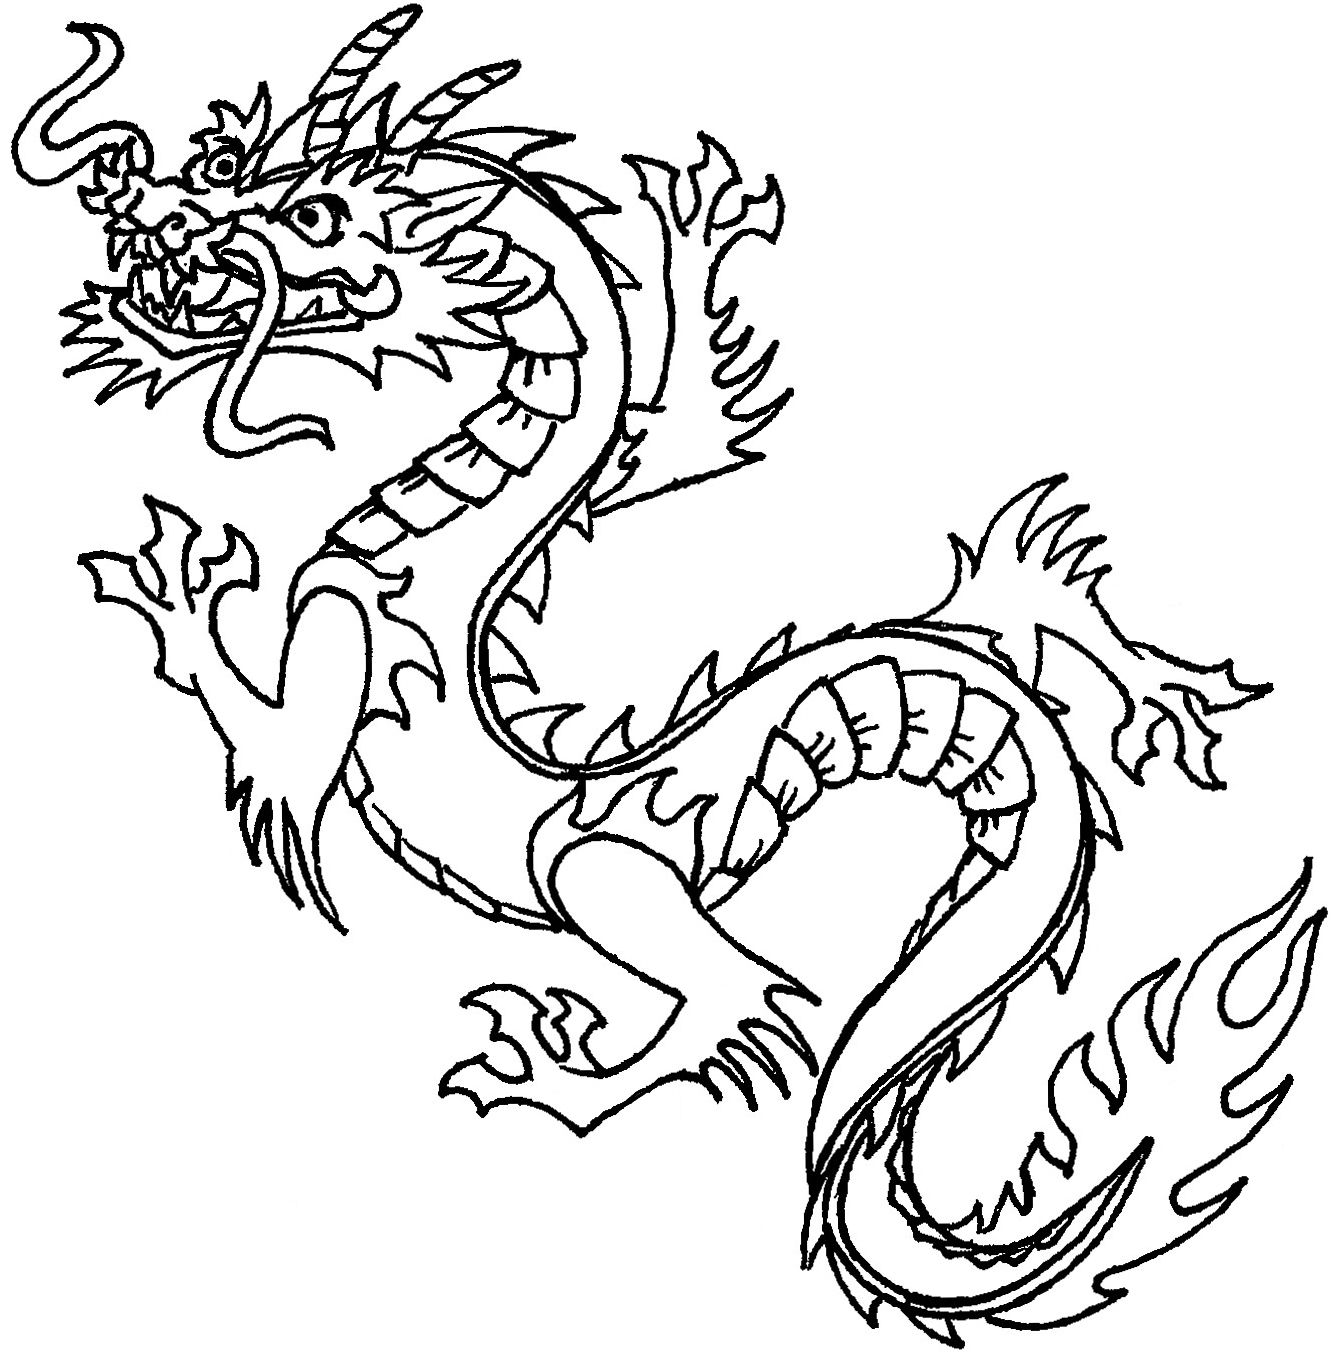 chinese new year dragon clipart black and white clipartsgram com rh pinterest com welsh dragon clipart black and white chinese dragon clipart black and white